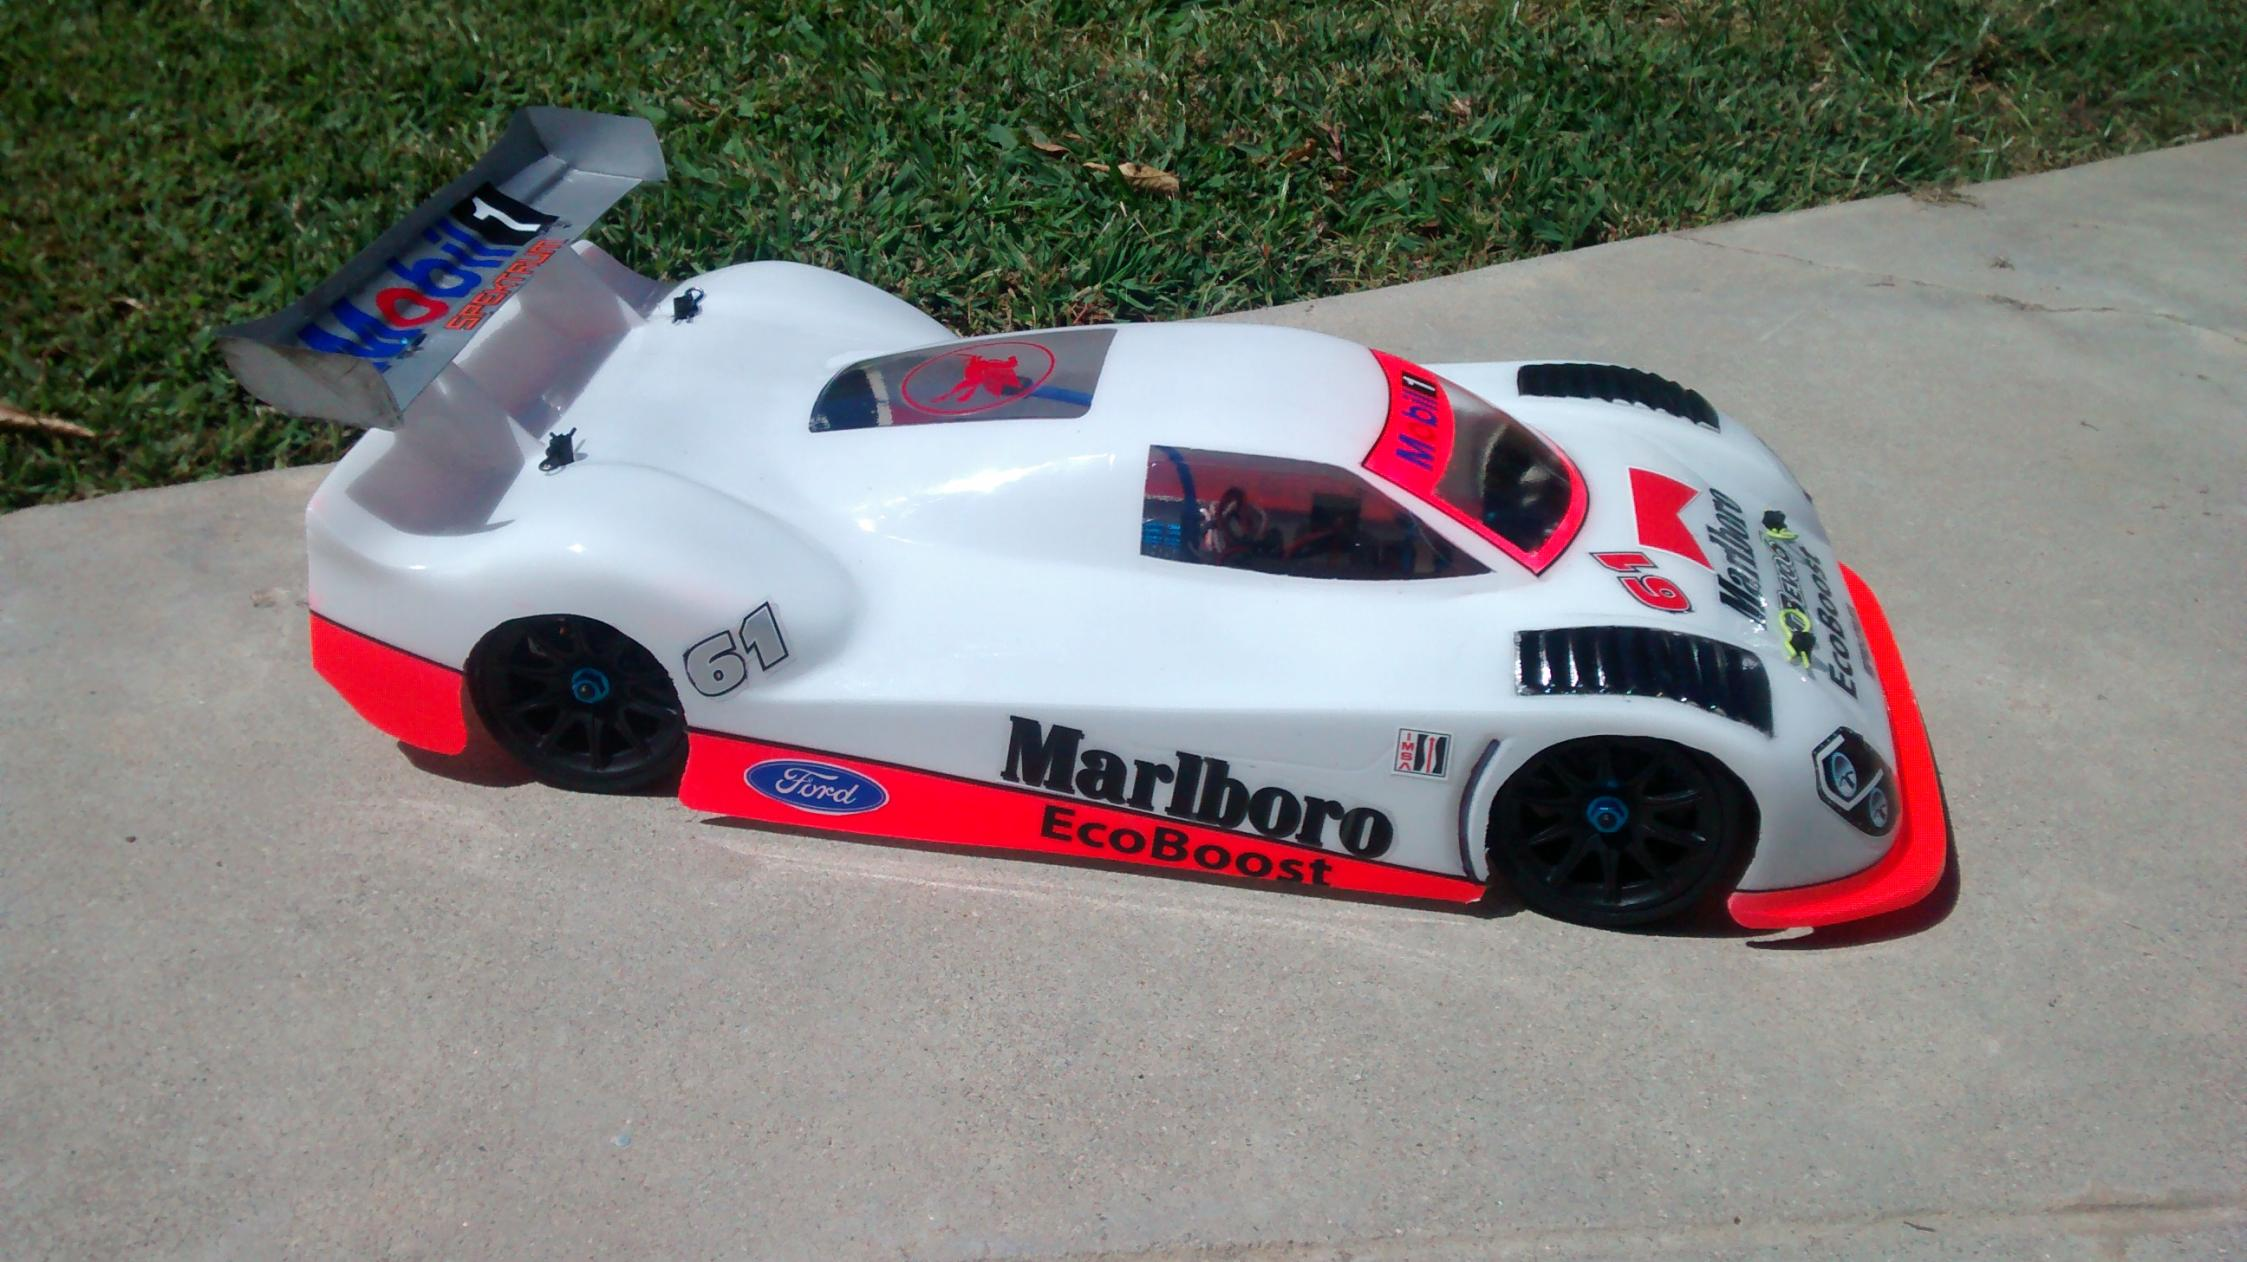 1230054d1410150125-usgt-body-pics-paint-discussion-img_20140816_114113363 Fascinating Hpi Racing 7038 Porsche 911 Gt1 Cars Trend